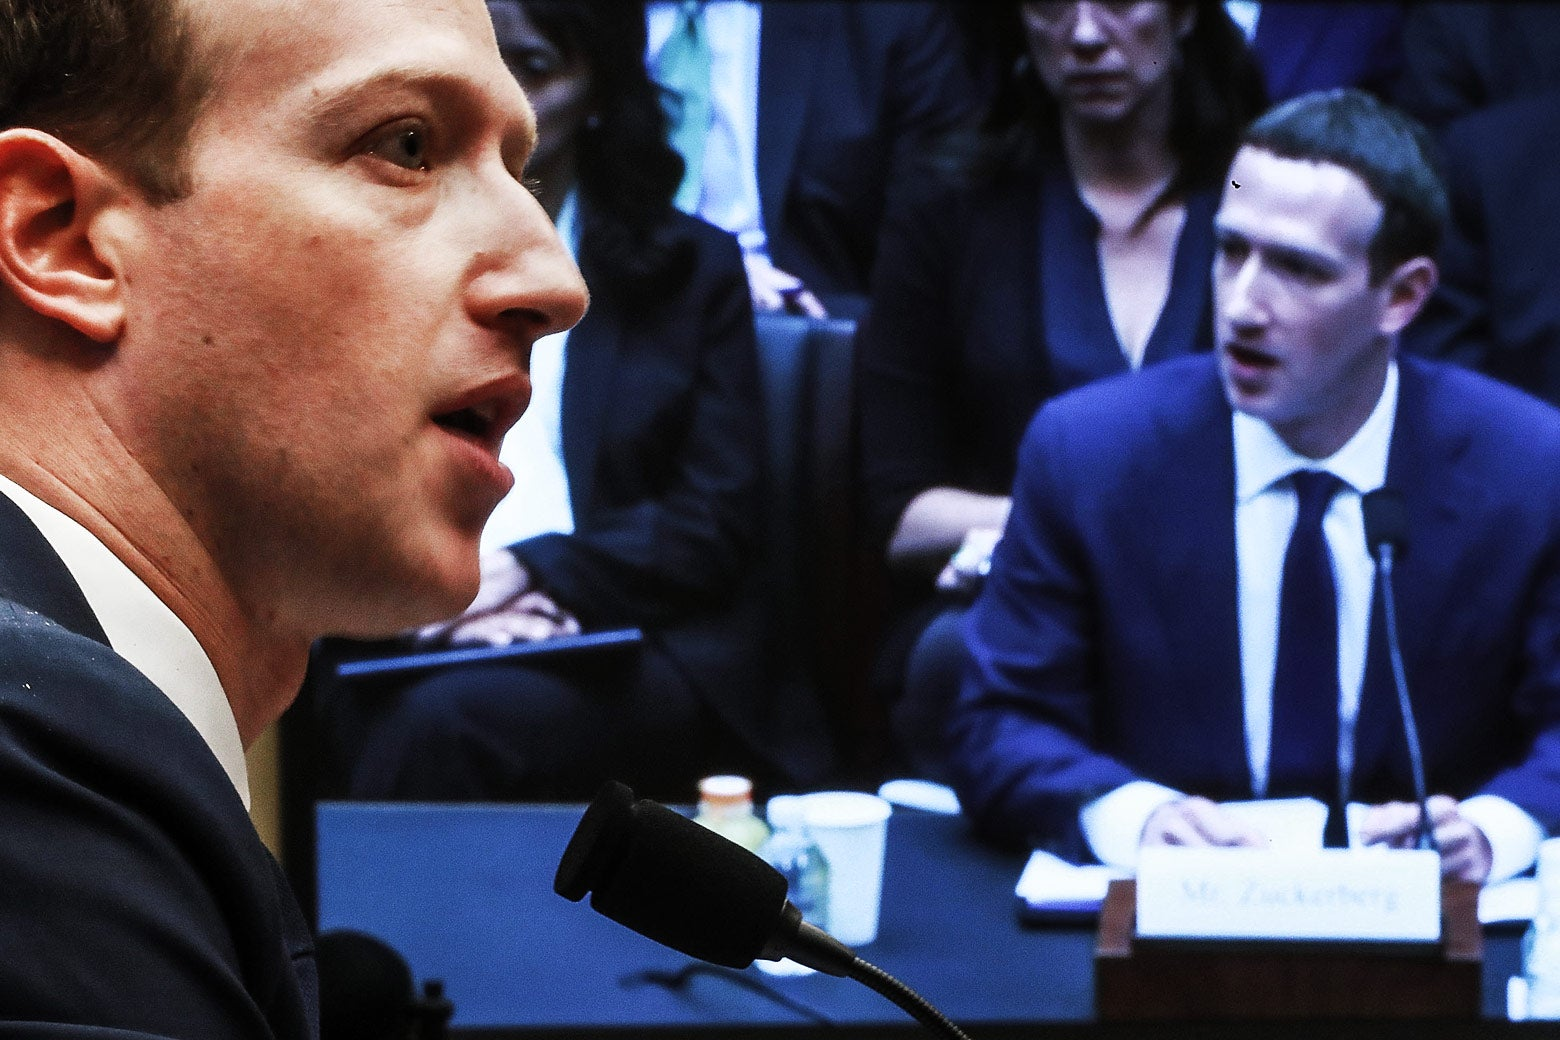 Facebook CEO Mark Zuckerberg testifies before the House Energy and Commerce Committee in the Rayburn House Office Building on Capitol Hill on Wednesday in Washington.